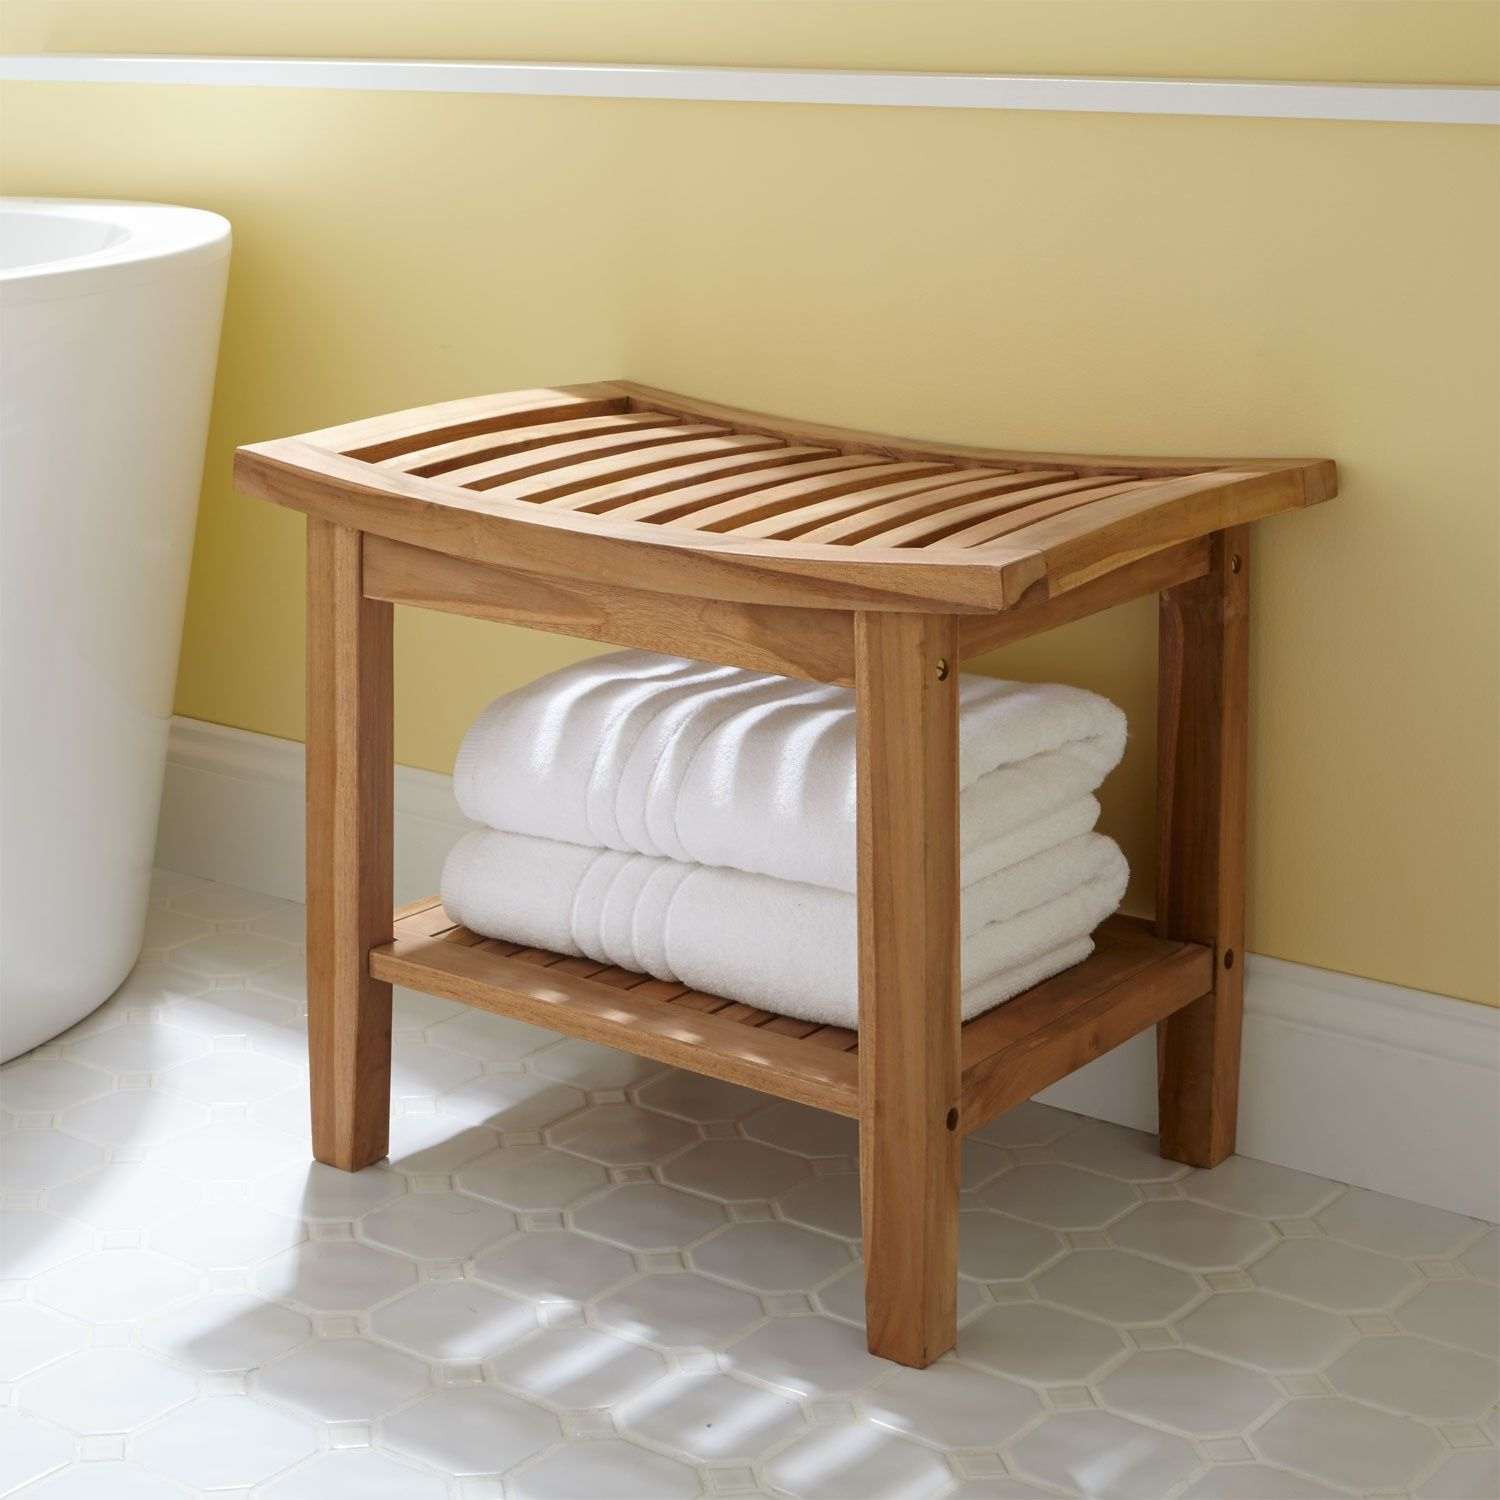 Small Bathroom Bench Interior Paint Color Schemes Check More At Http Www Freshtalknetwork